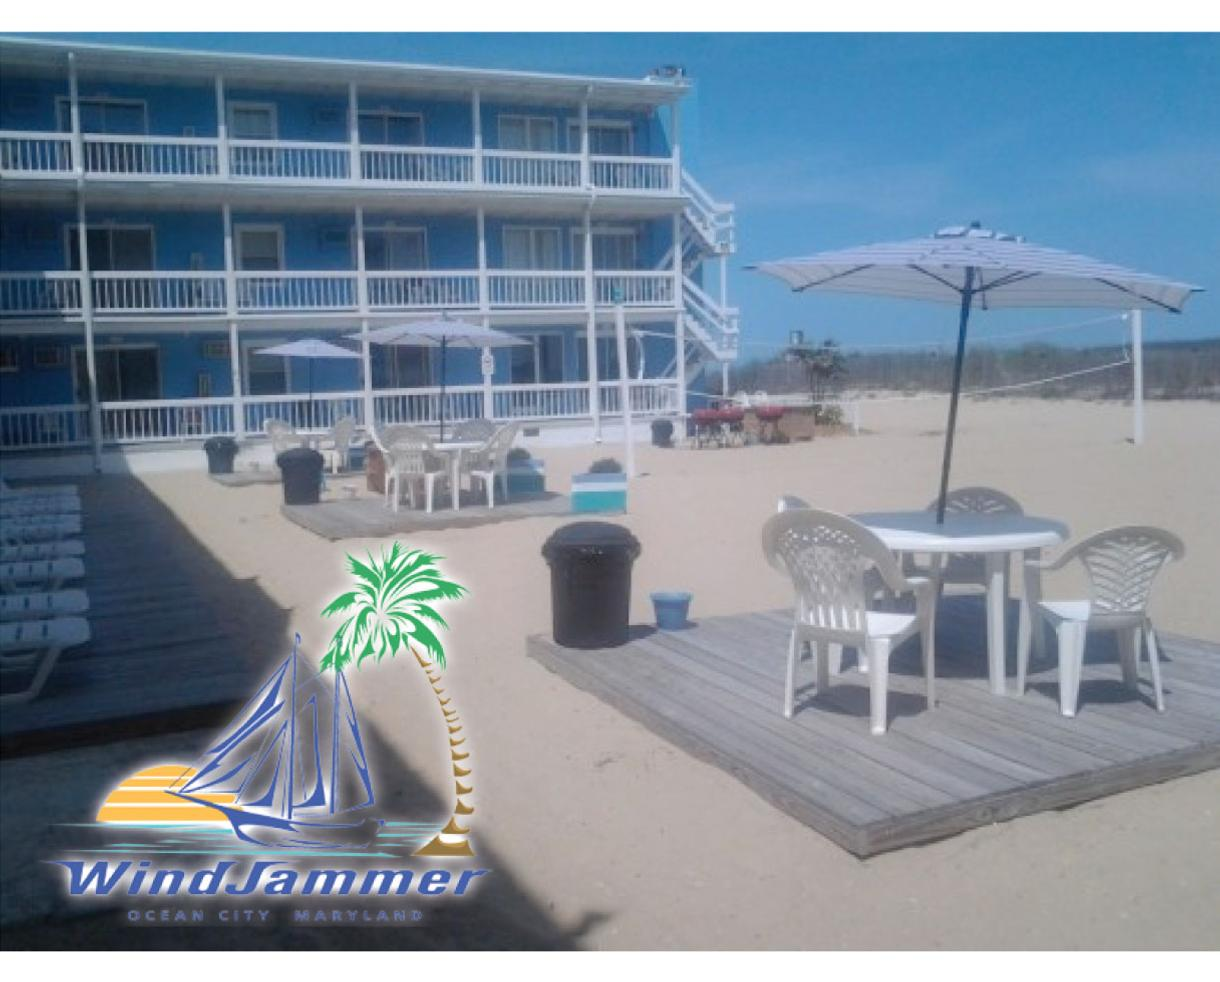 $211+ for 2-Night Stay at the Windjammer Condominiums - Ocean City Condos Right on the Beach! (Up to 32% Off)